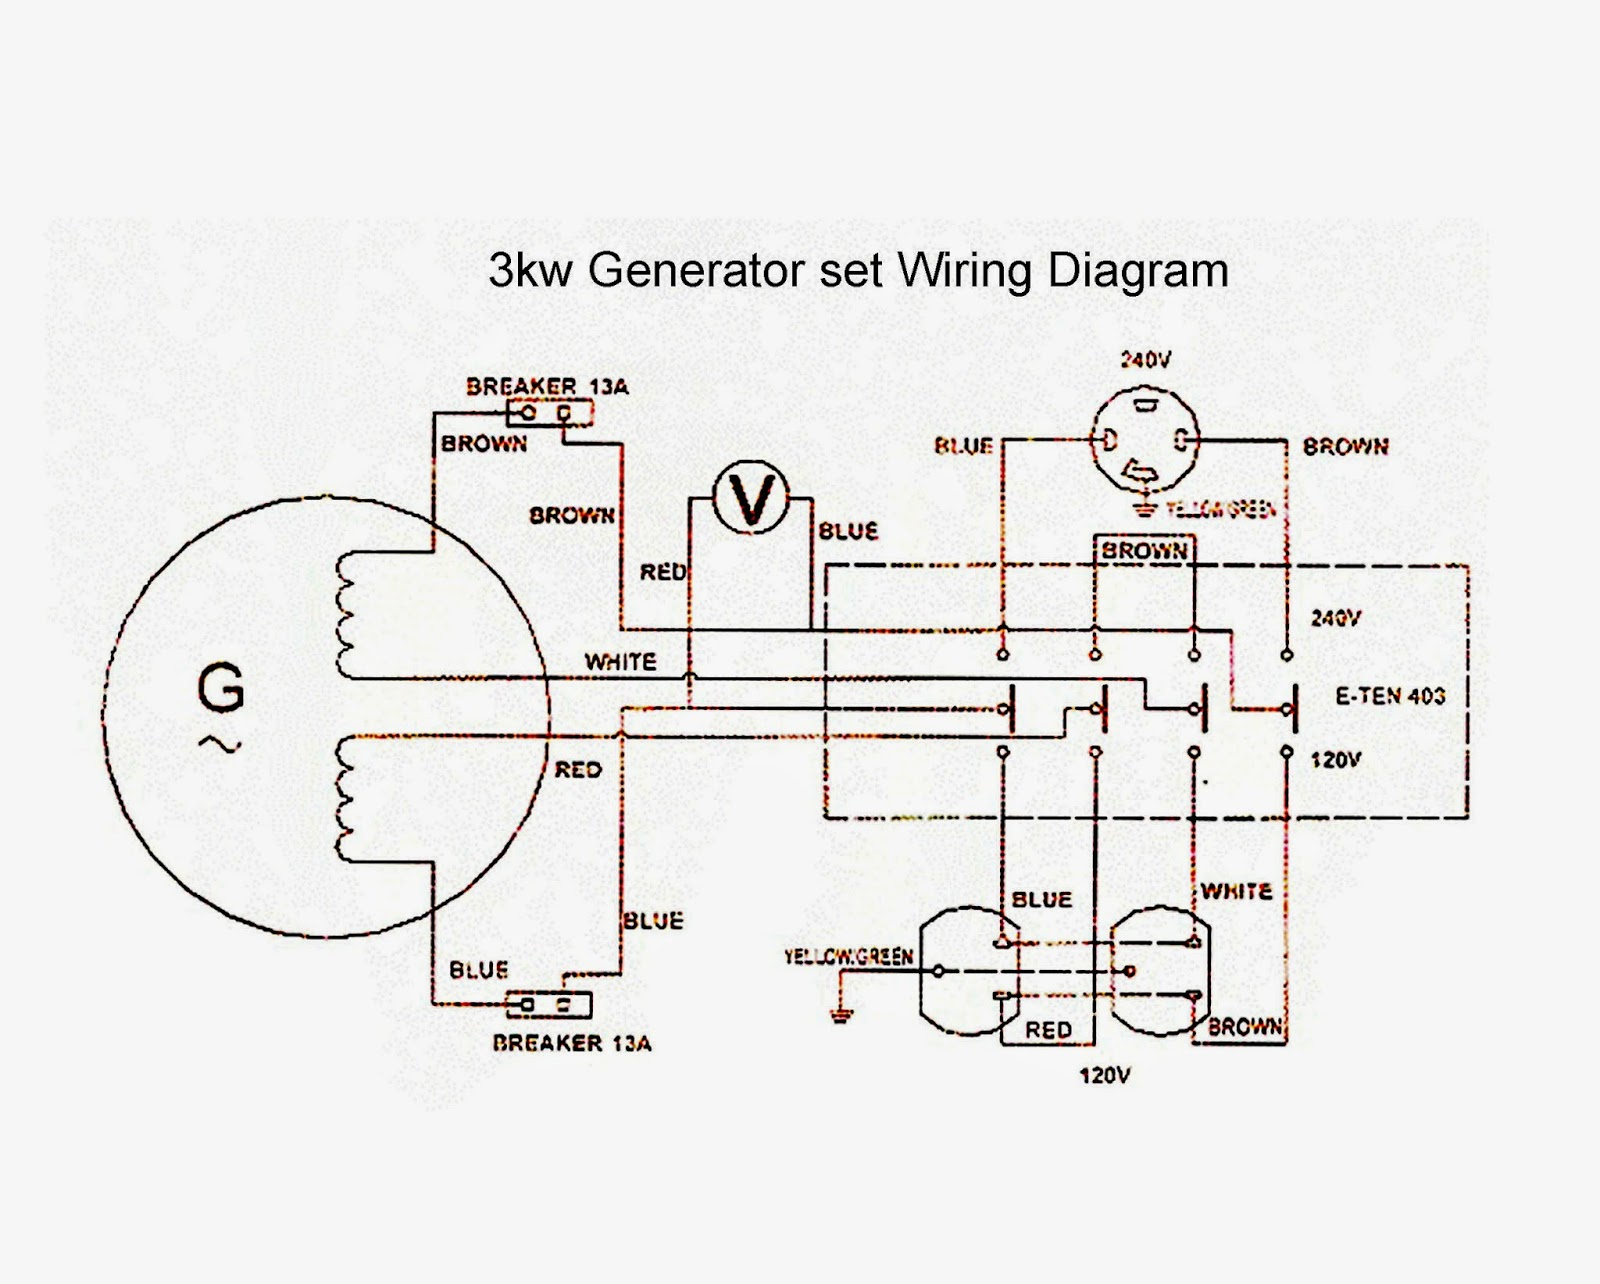 small resolution of house wiring diagram freeware wiring diagram advance free home wiring diagram software home wiring diagram freeware